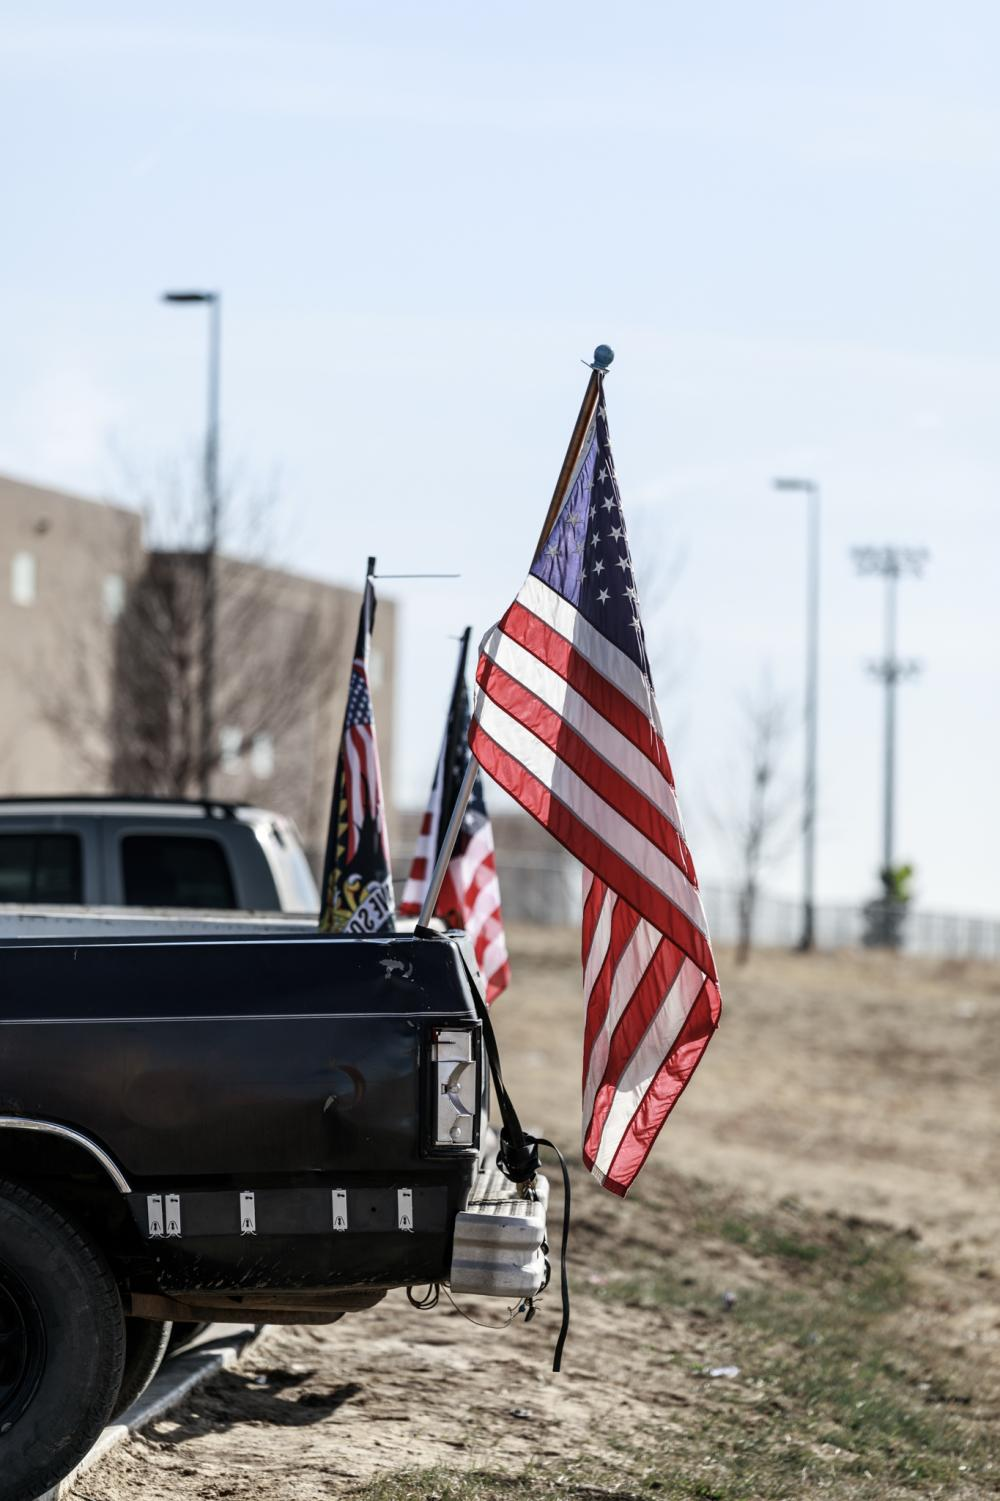 In+response+to+the+walkout%2C+several+students+display+their+American+flags.+